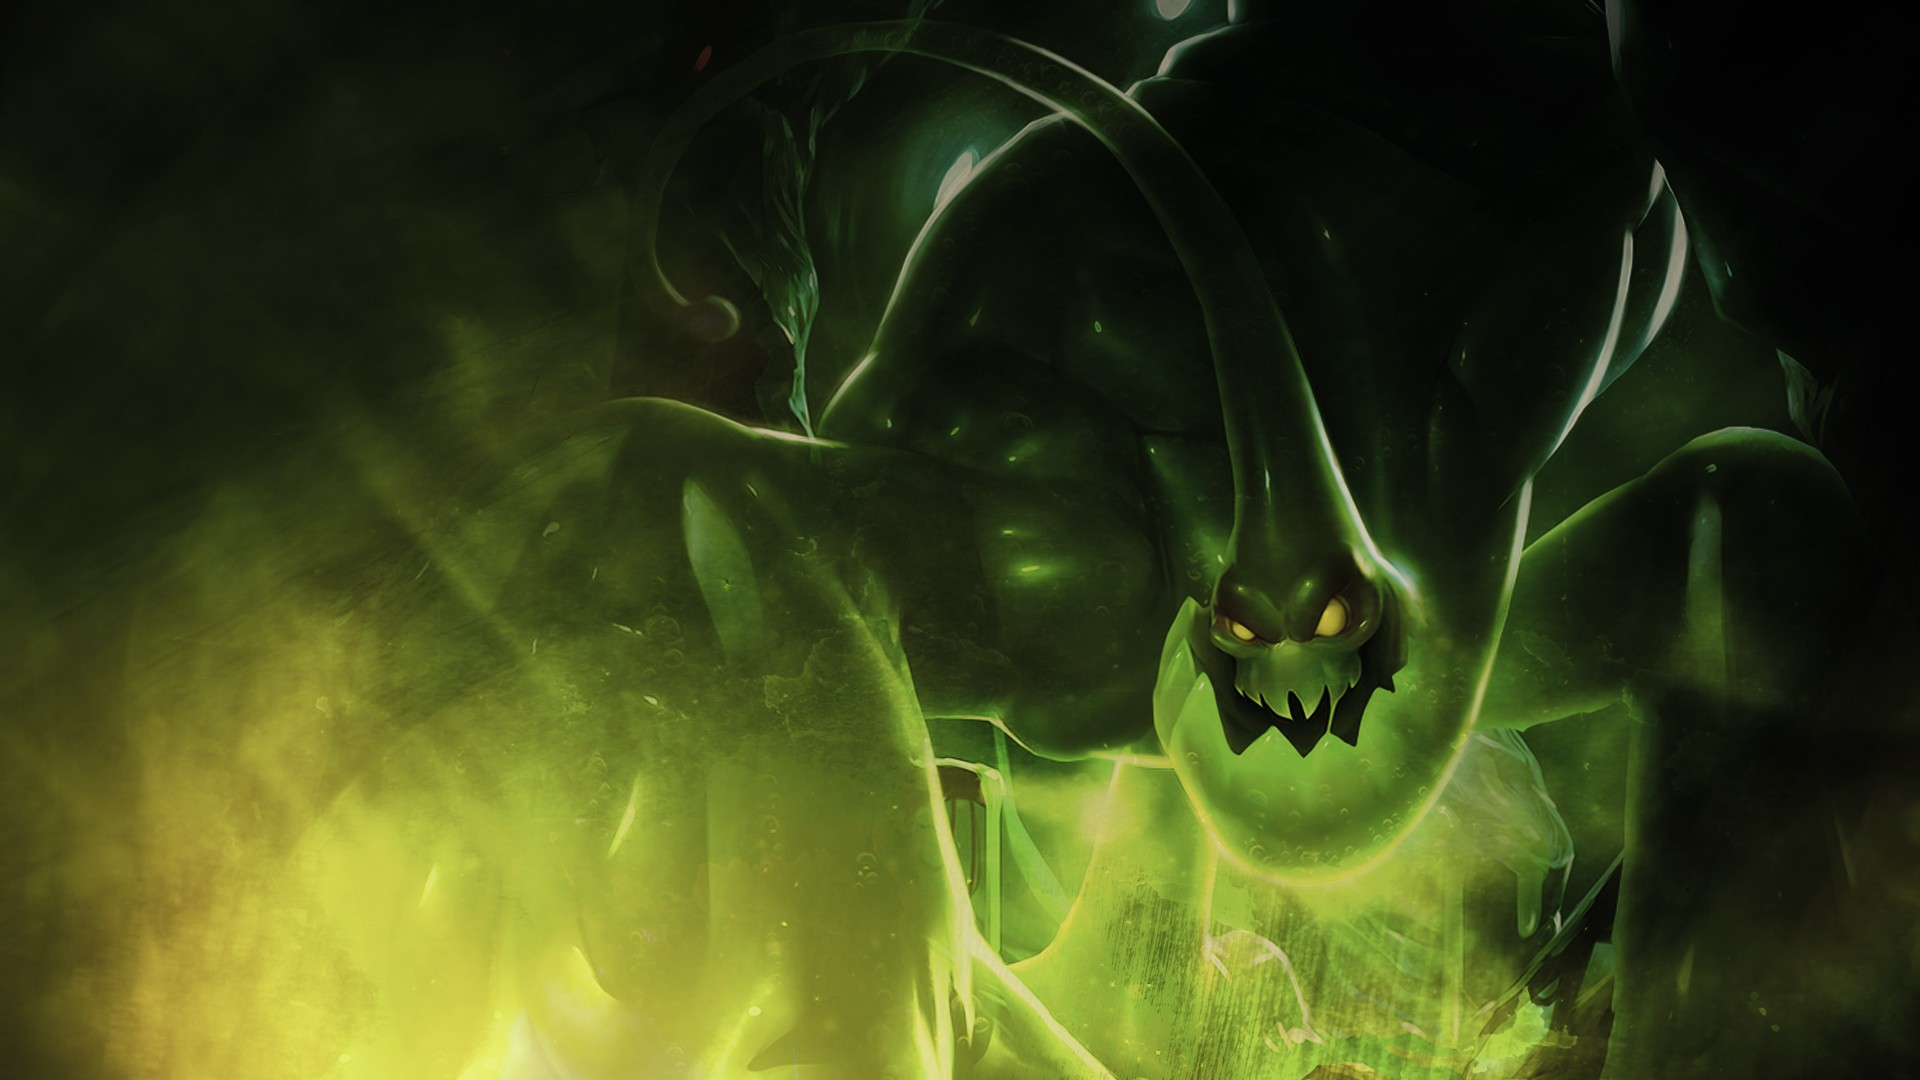 Download Wallpaper From Game League Of Legends With s High Quality Zac